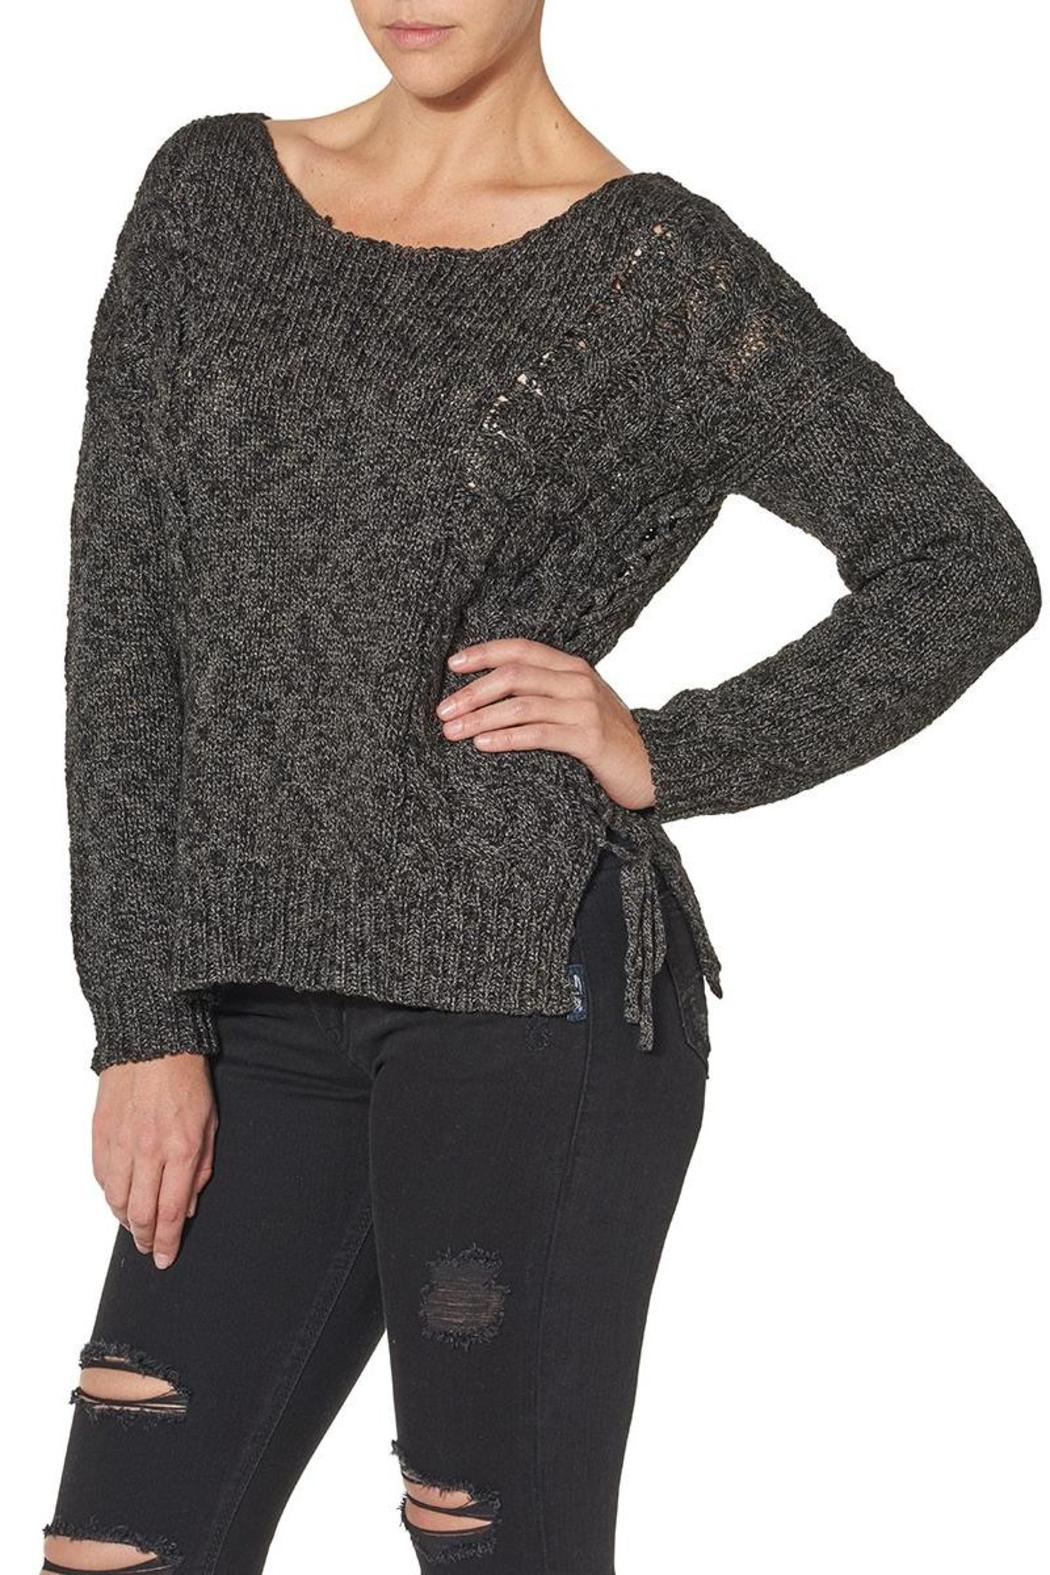 Silver Jeans Co. Lace Up Back Detailed Sweater - Main Image